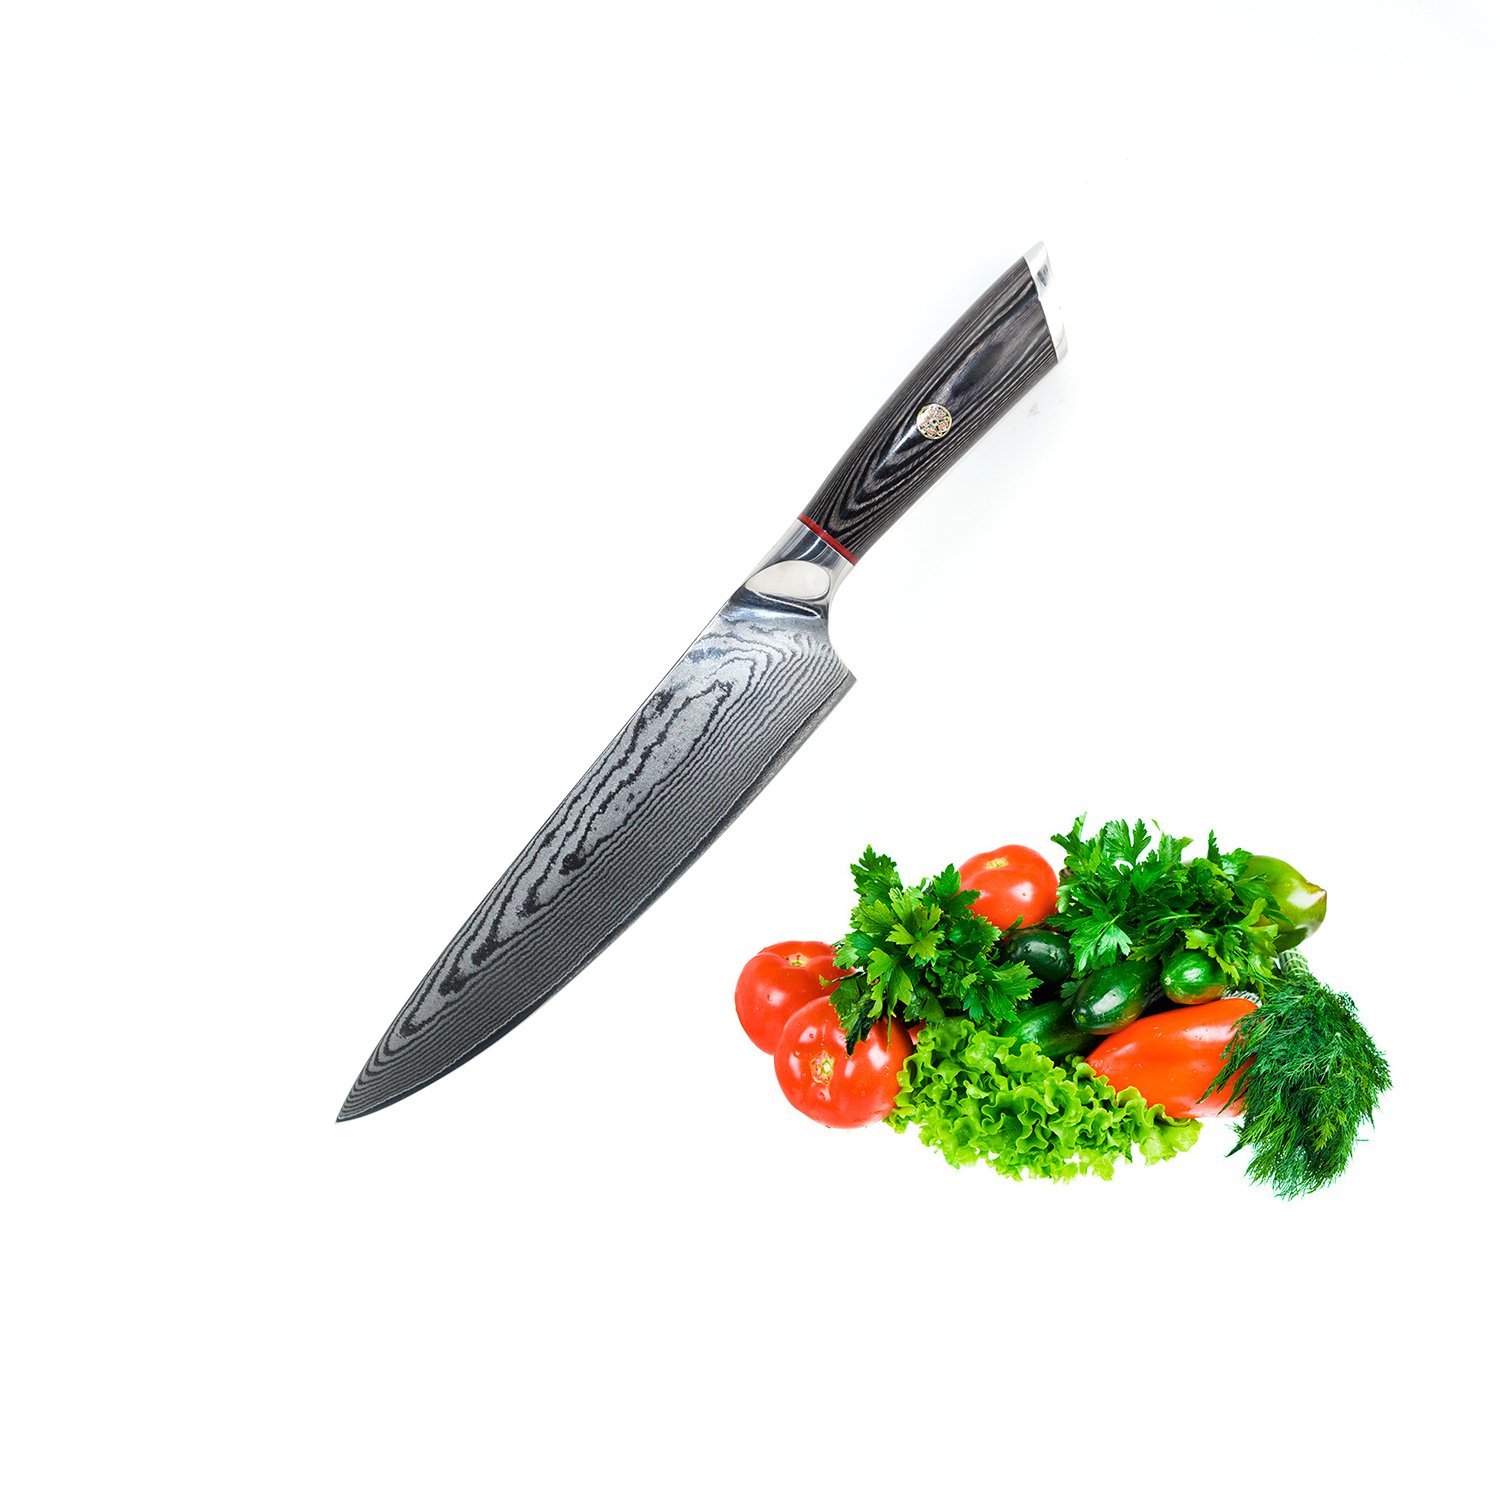 EKUER 8 Inch Chef's Knife for Cutting Sushi,Meat,Fish & Vegetables- Professional Damascus Steel VG10 Ultra Razor Sharp Blade and Ergonomic Handle by EKUER (Image #1)